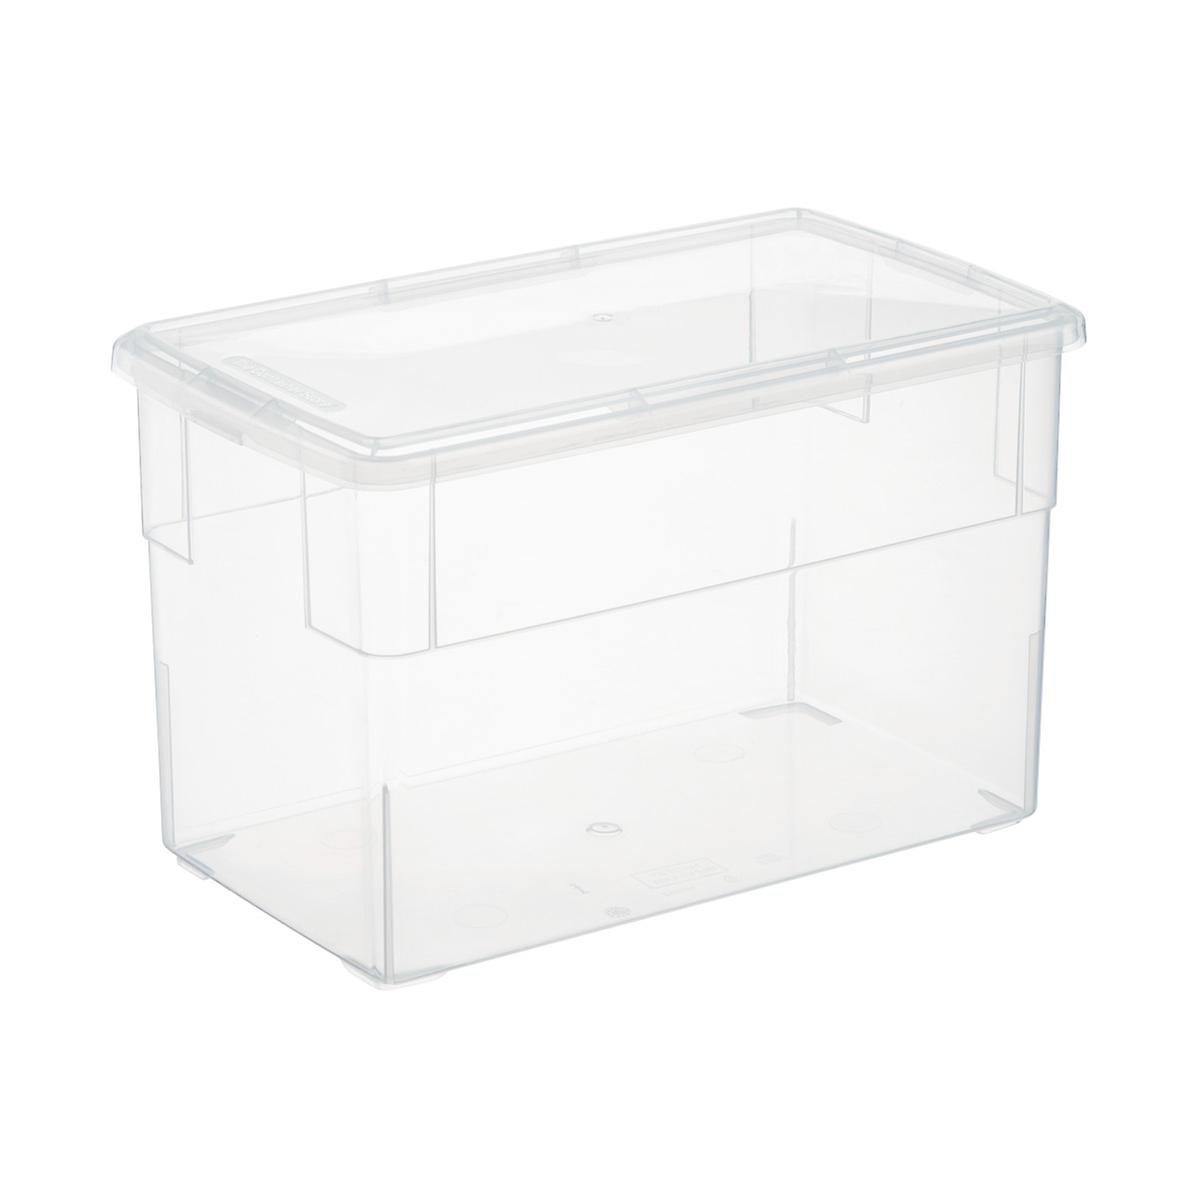 Clear Plastic Storage Boxes Our Clear Storage Boxes